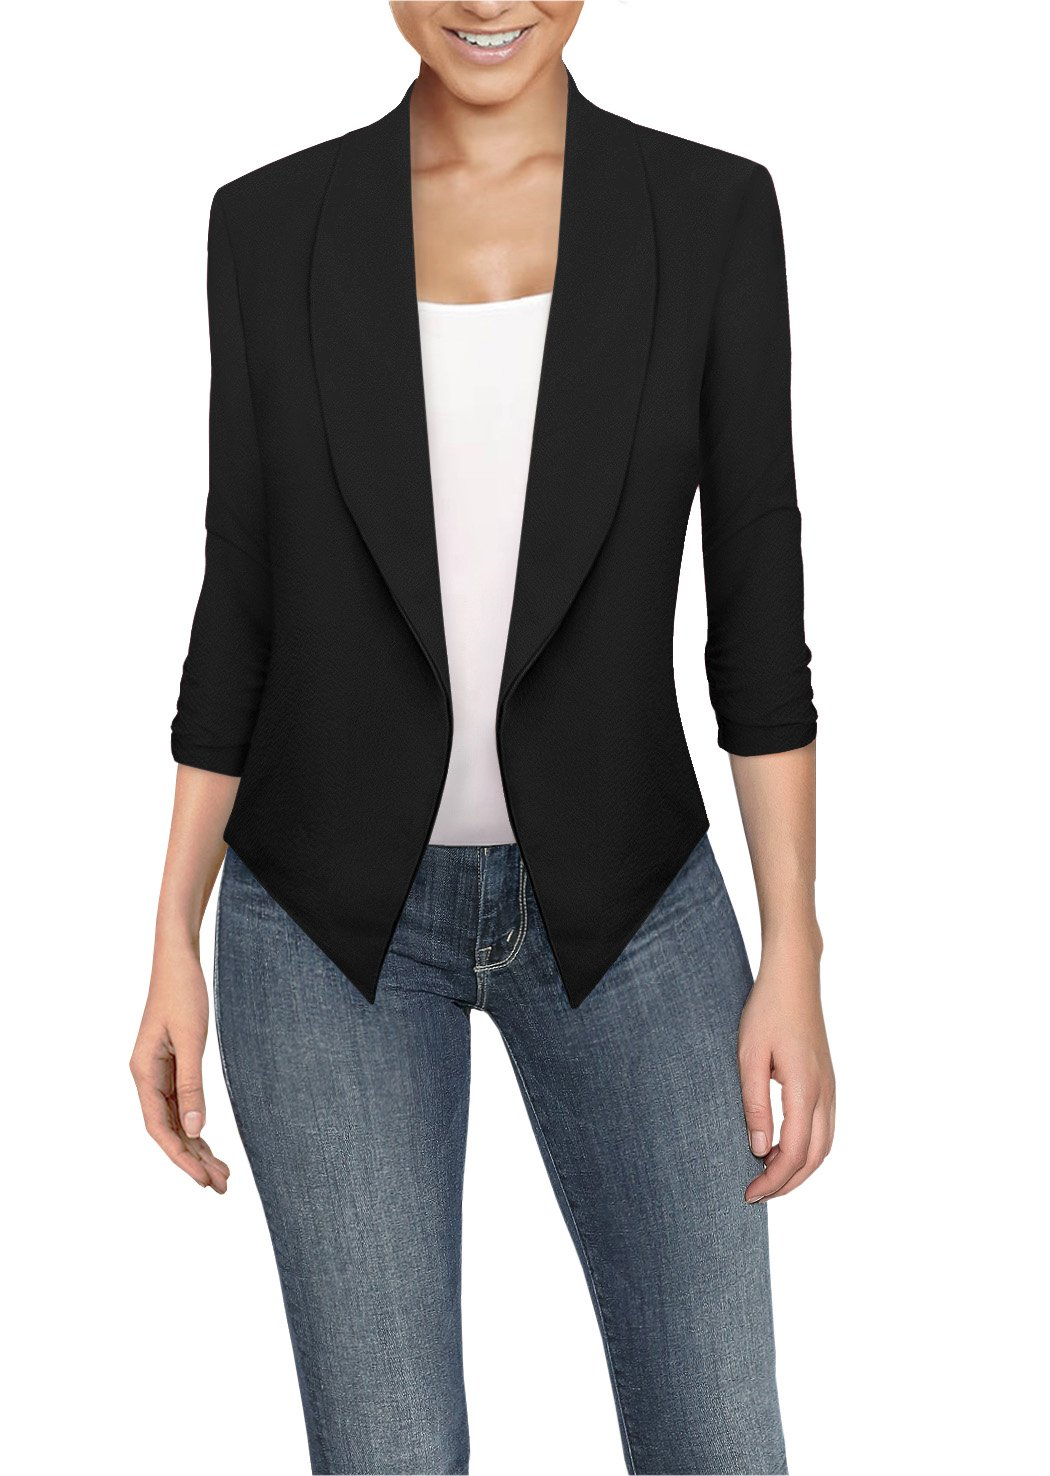 HyBrid & Company Womens Casual Work Office Open Front Blazer JK1133 Black Large